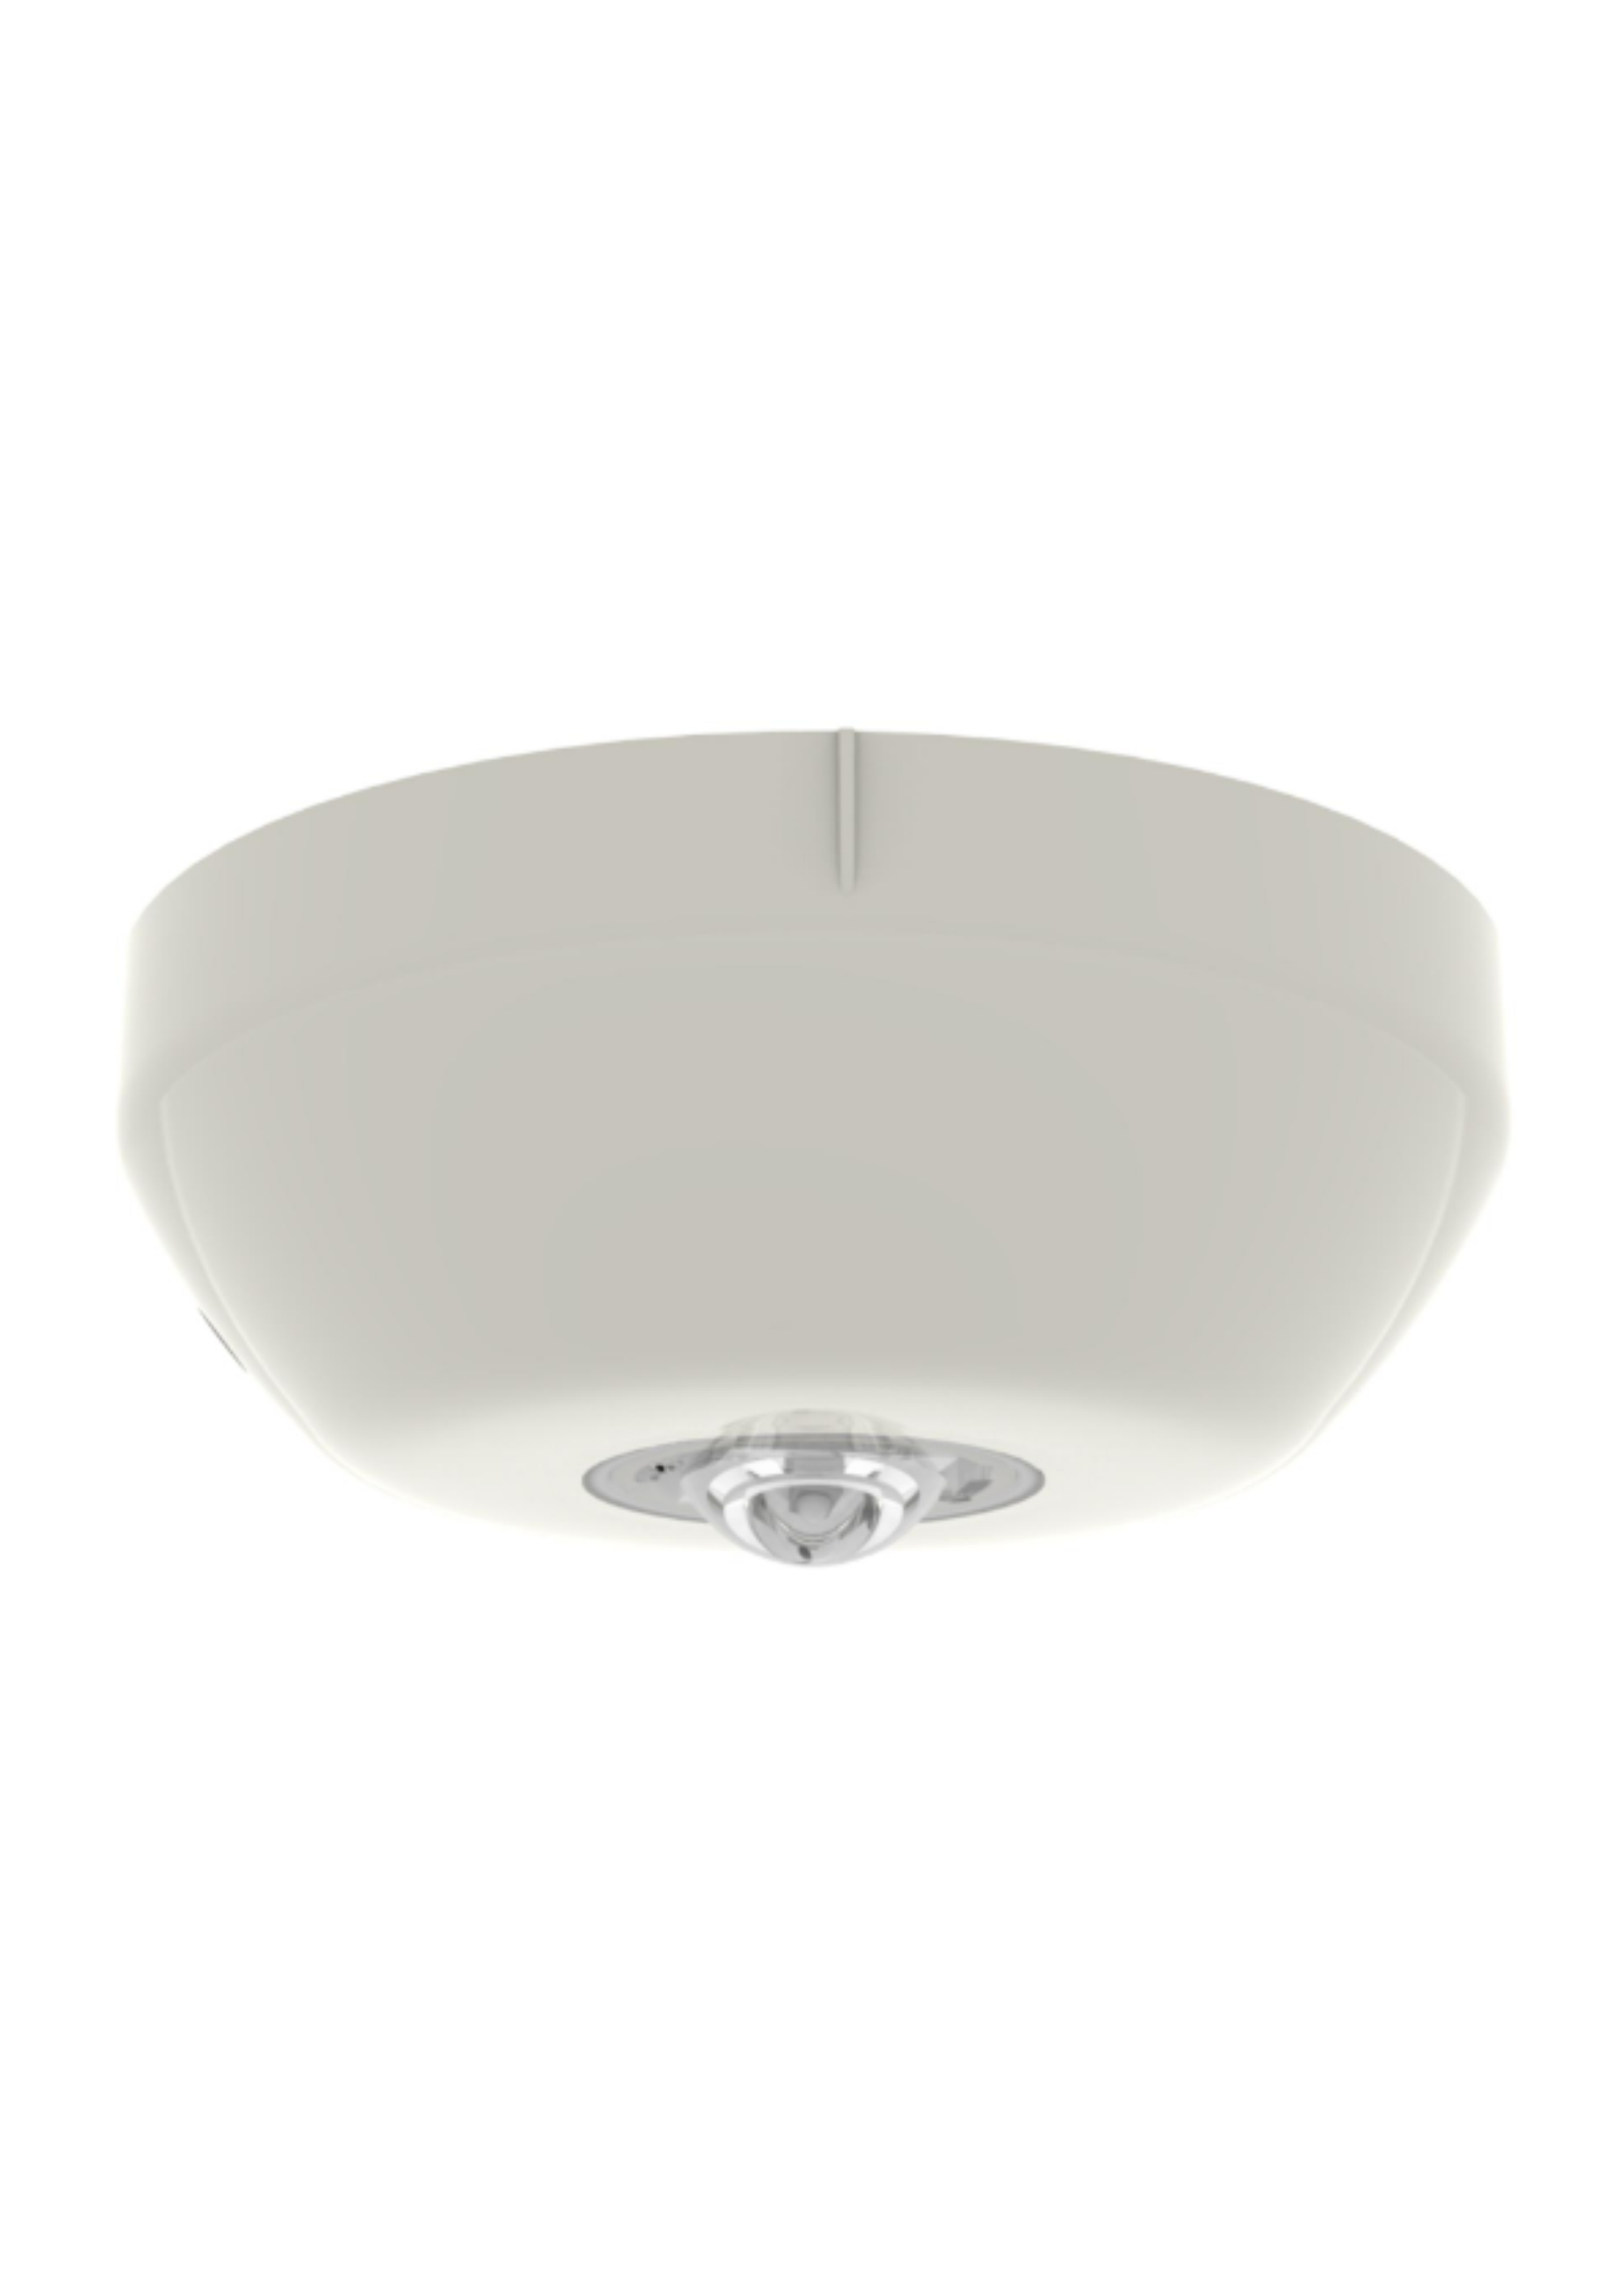 Ceiling Beacon - Ivory case, red LEDs (7.5m) 14602...